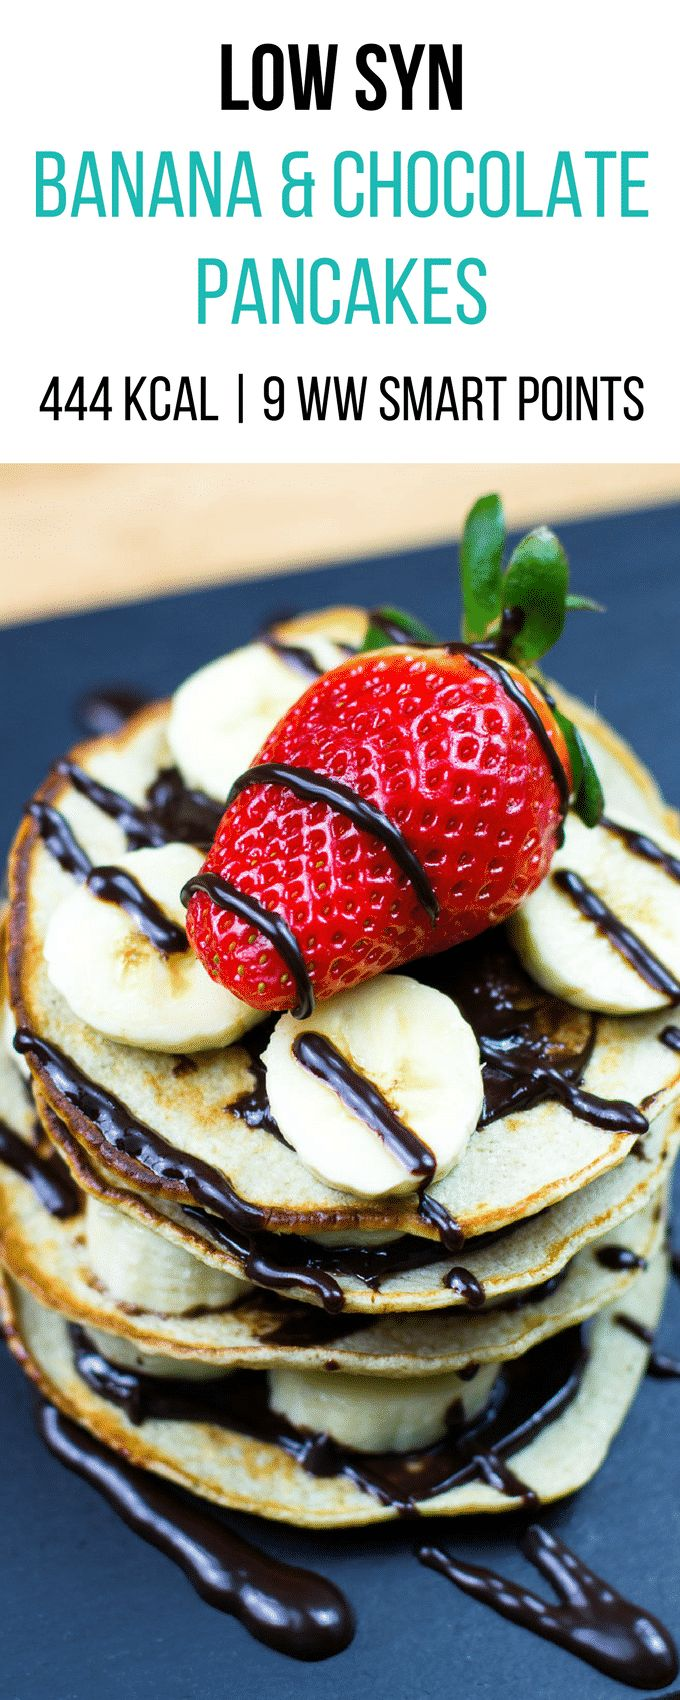 Low Syn Banana and Chocolate Pancakes | Slimming World | 444Kcal | 9 Weight Watchers Smart Points | pinchofnom.com